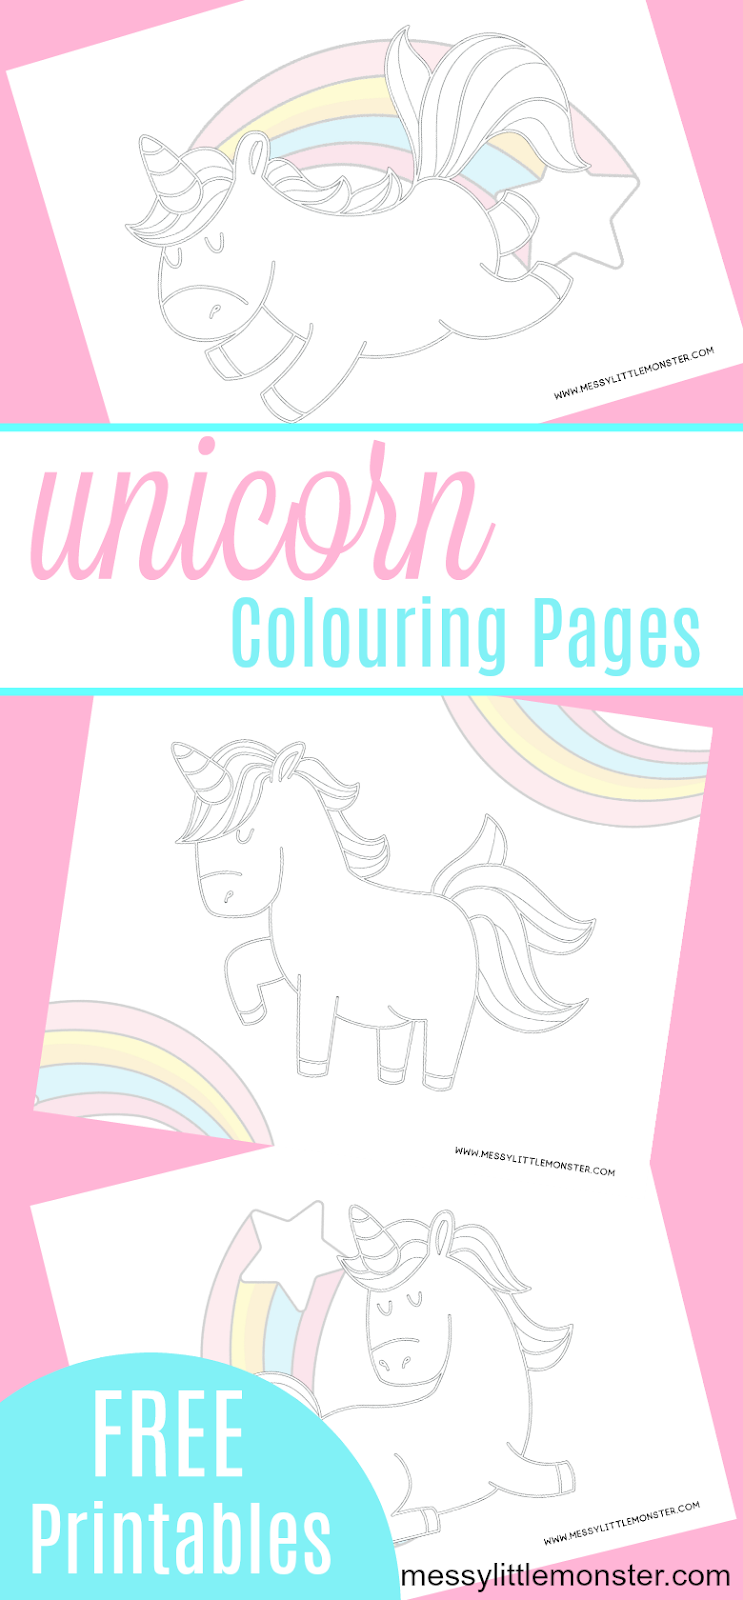 Free printable Unicorn Colouring Pages - 3 unicorn pictures to print and colour at home. These unicorn sheets can be put together to make a mini unicorn colouring book.